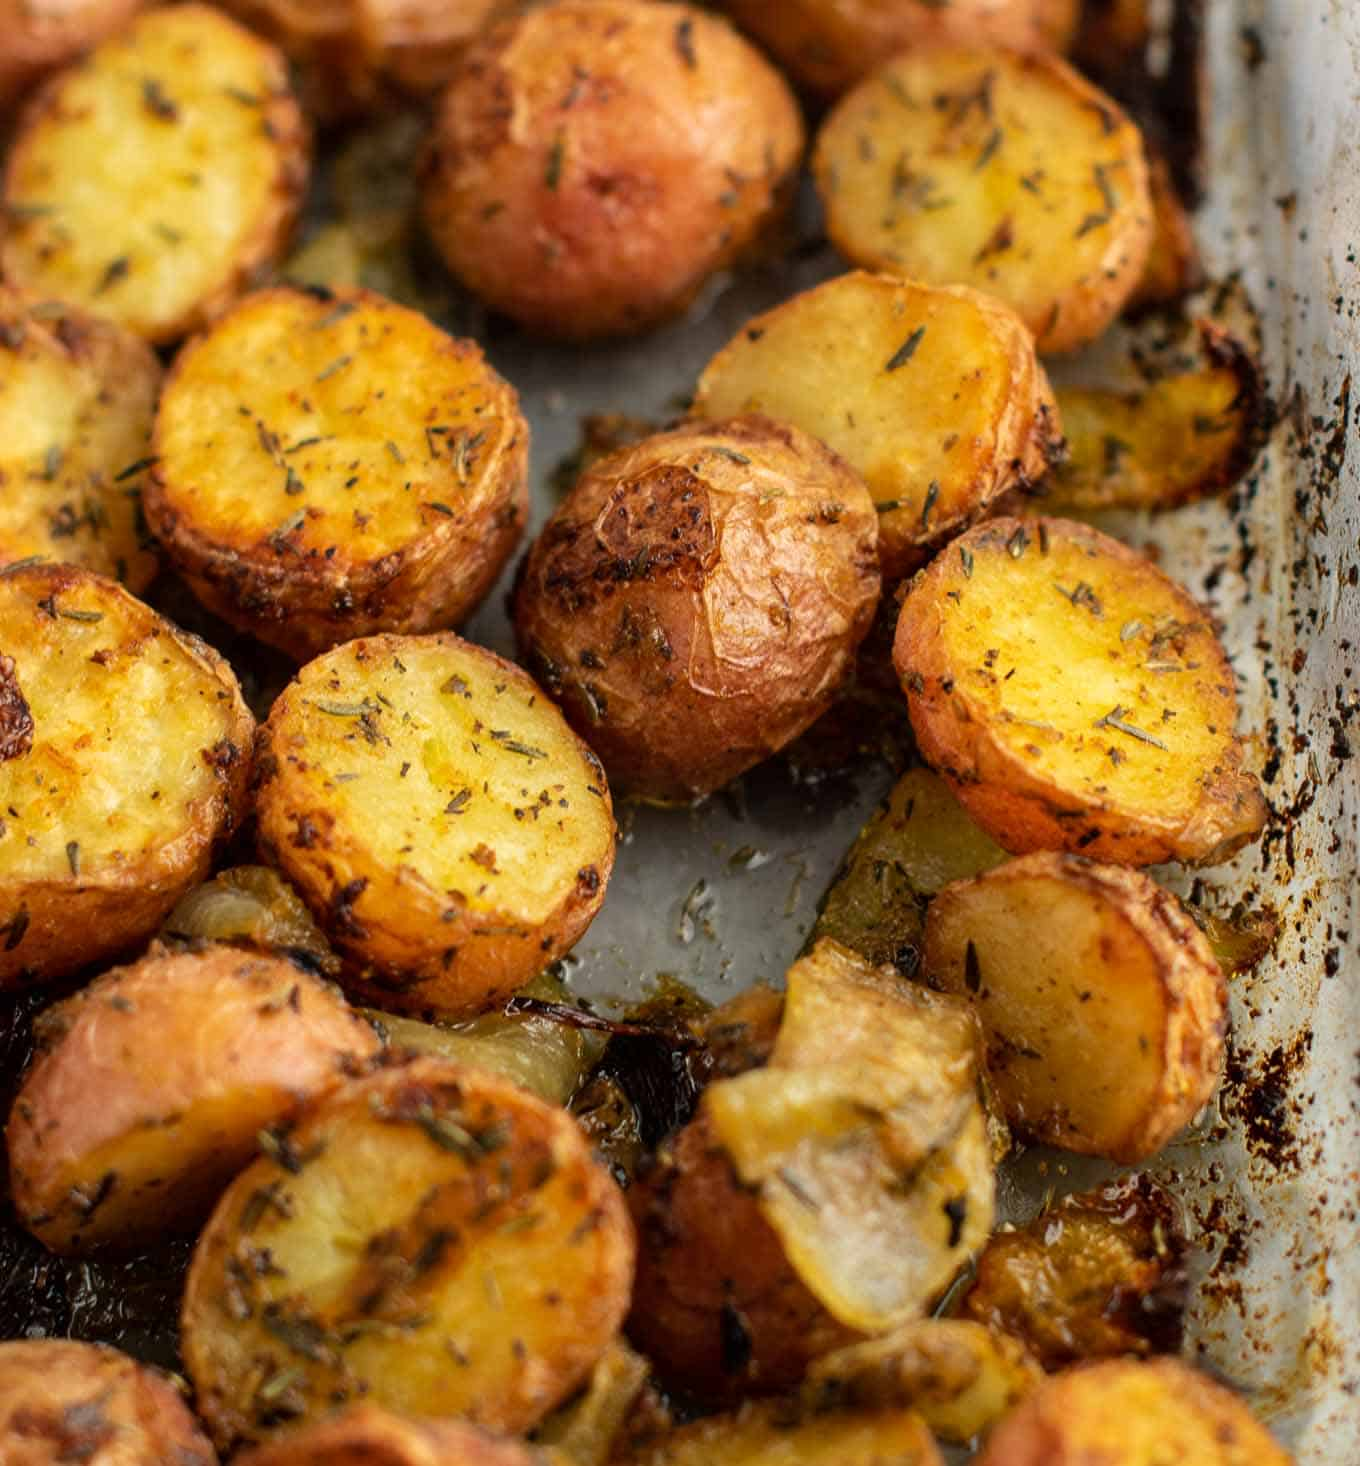 Easy roasted potatoes – delicious side dish! #potatoesandonions #sidedish #potatoes #dinner